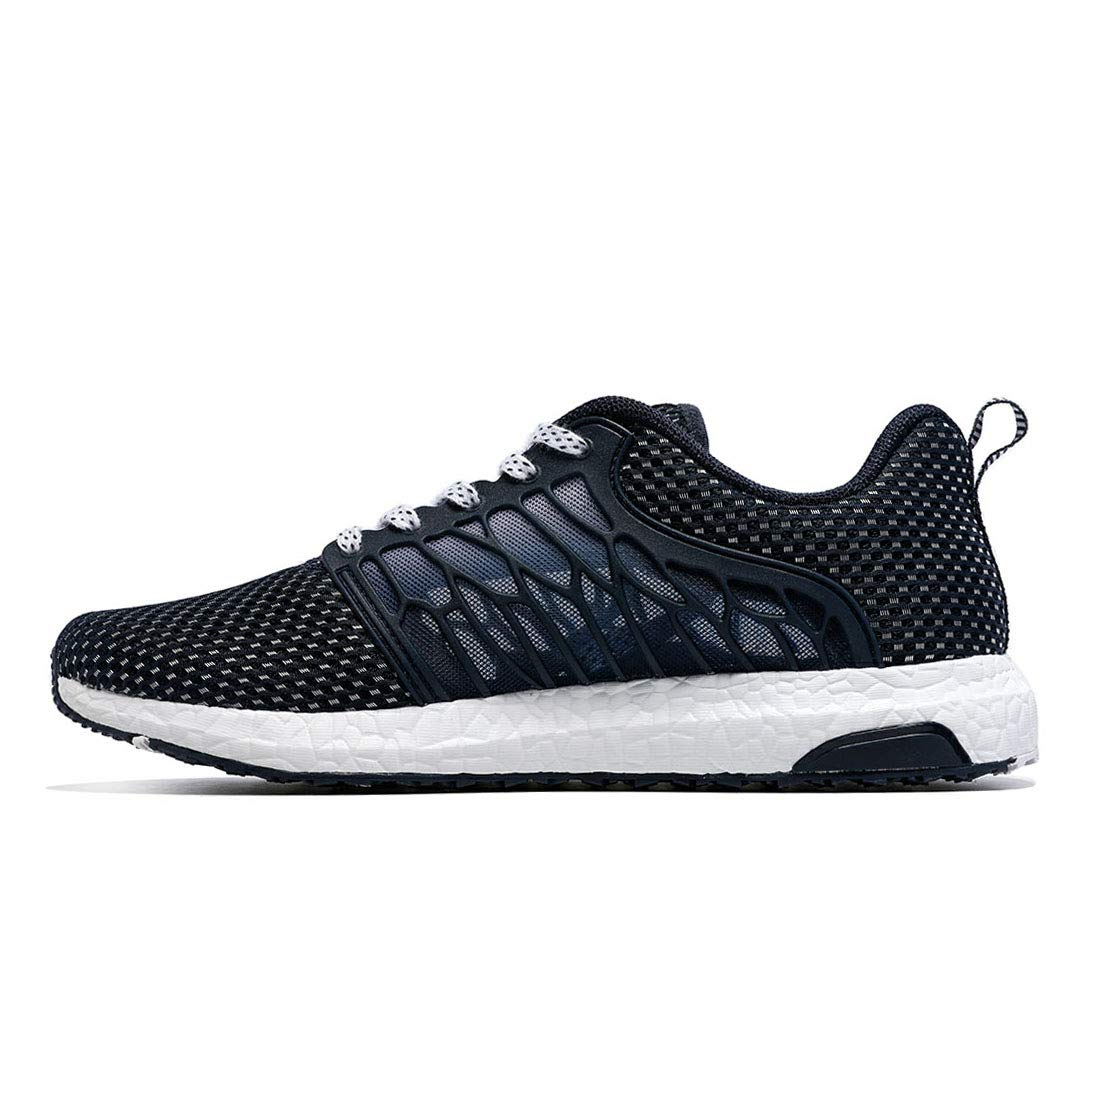 ONEMIX Men's Mesh Sports Running Shoes Breathable Gym Sneakers